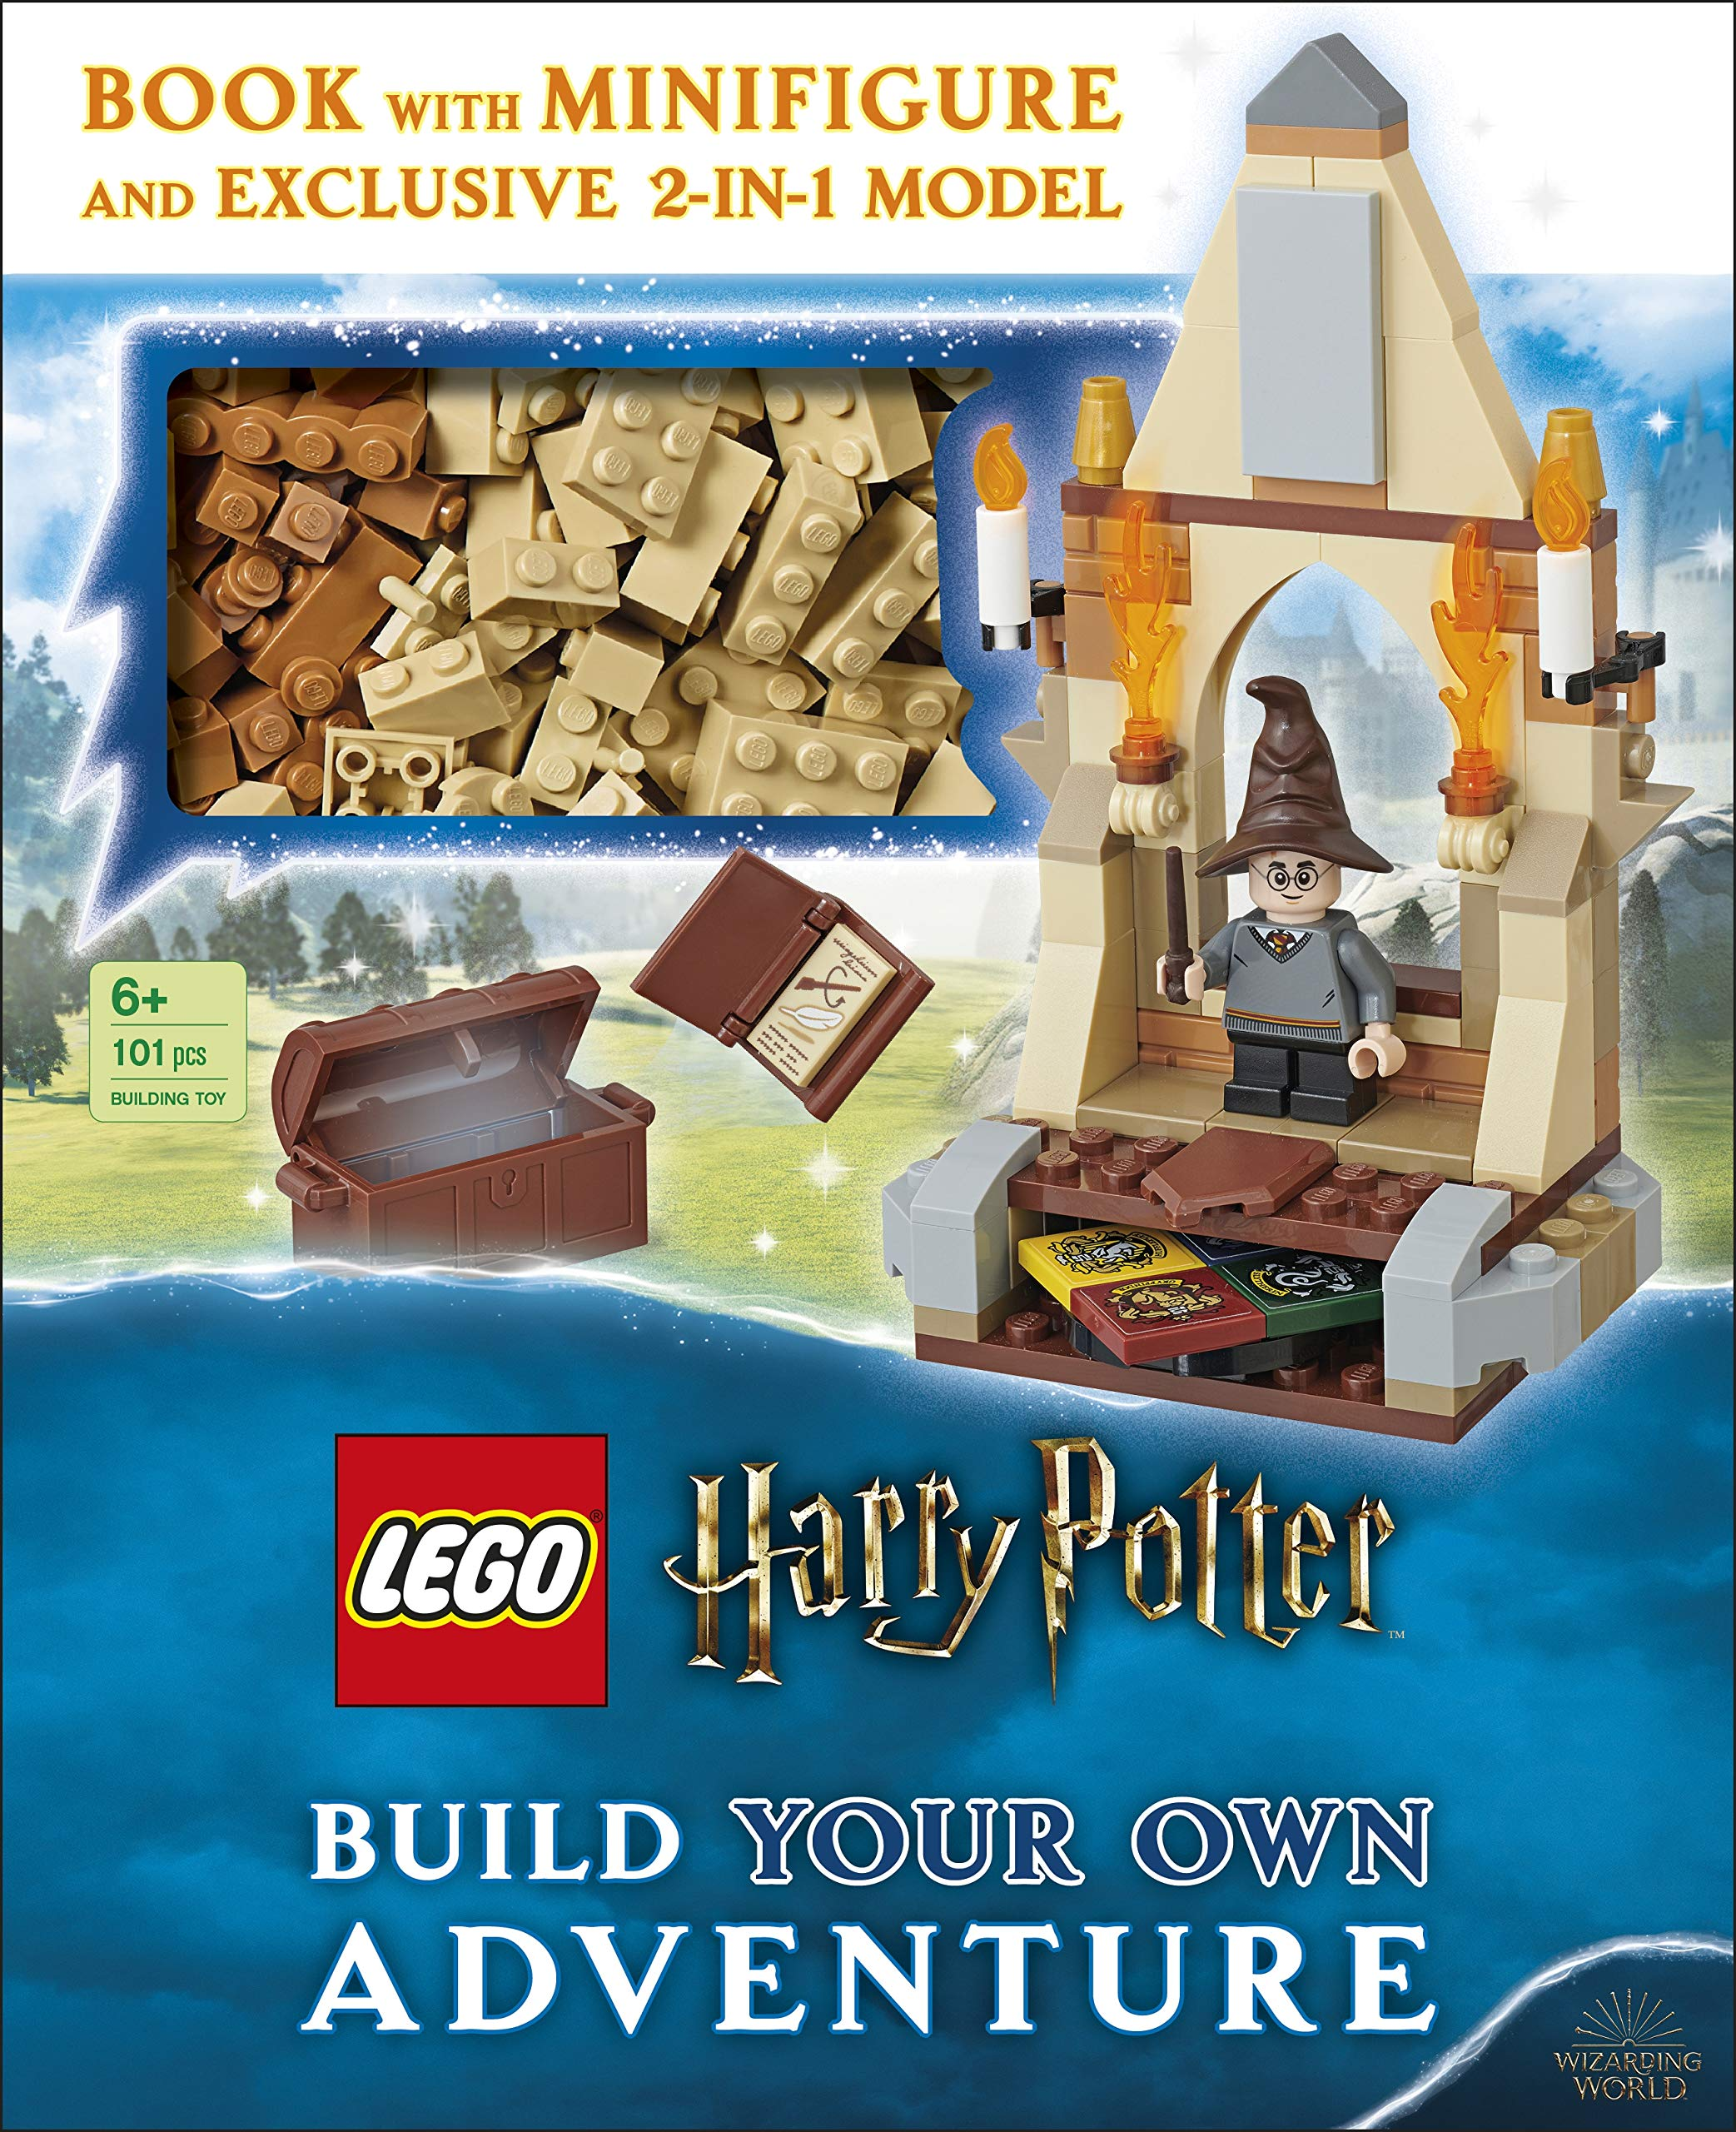 Lego Harry Potter Build Your Own Adventure With Lego Harry Potter